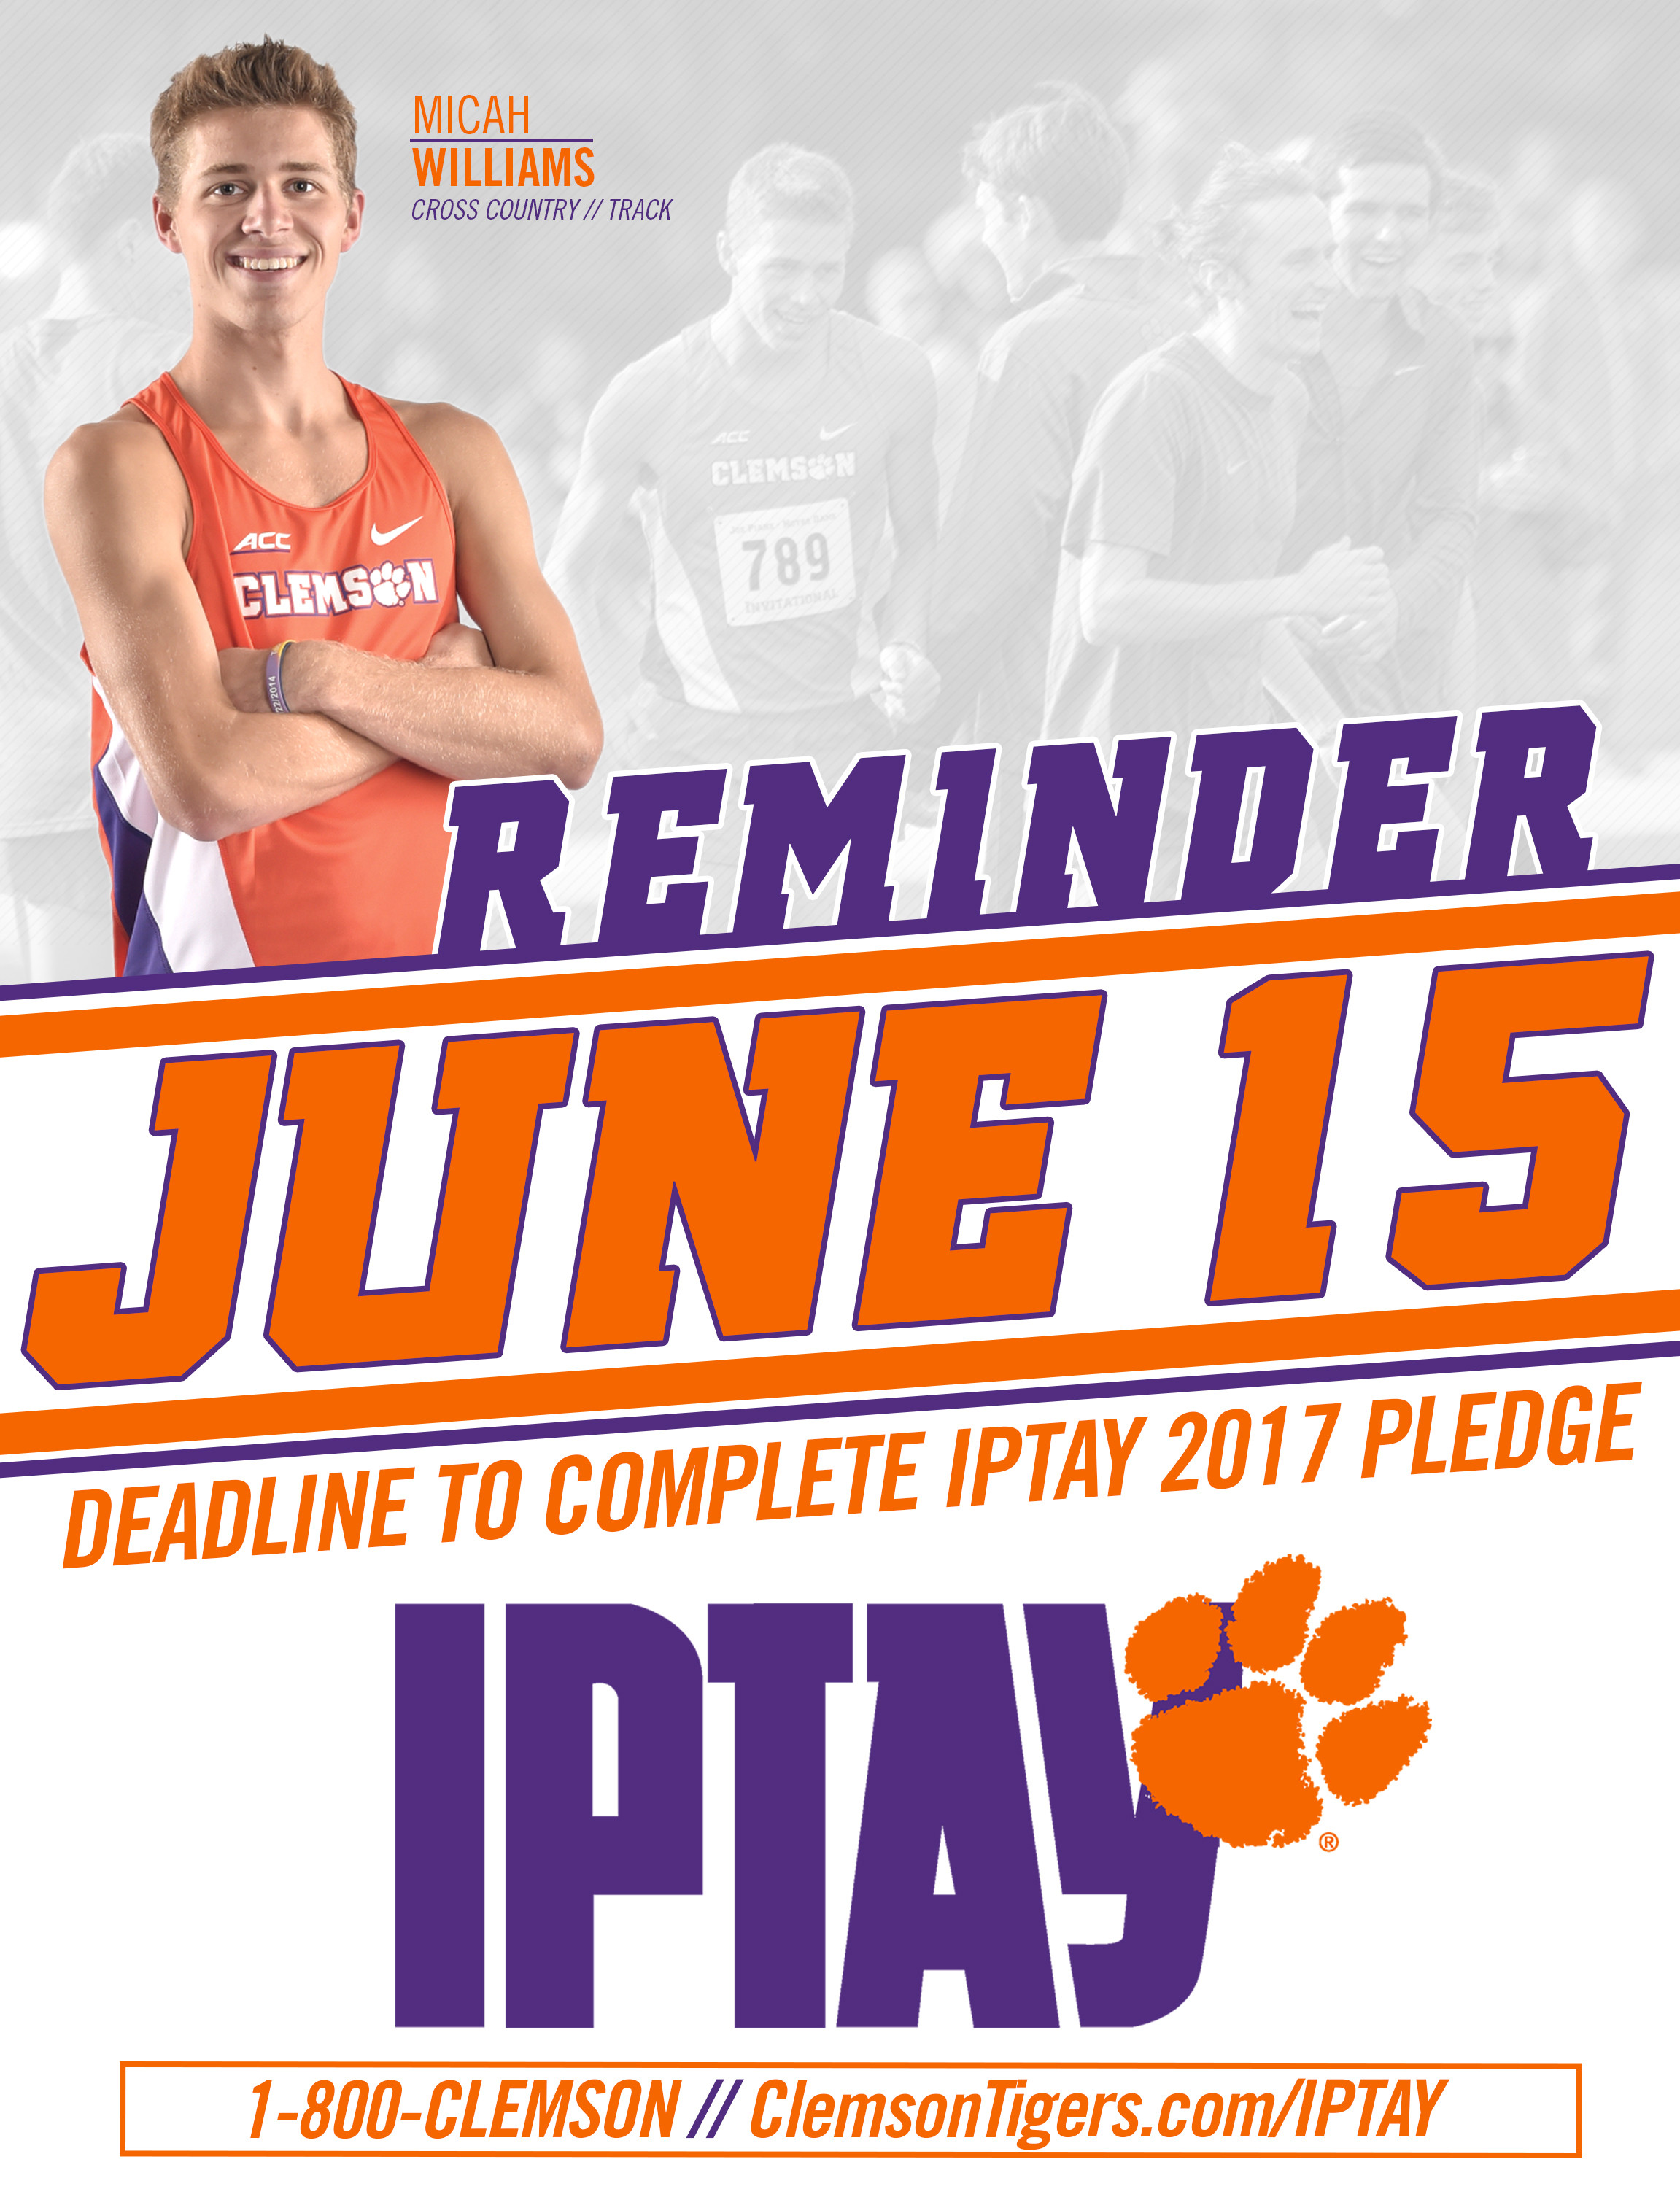 IPTAY 2017 June 15 Deadline Is Now Just One Month Away